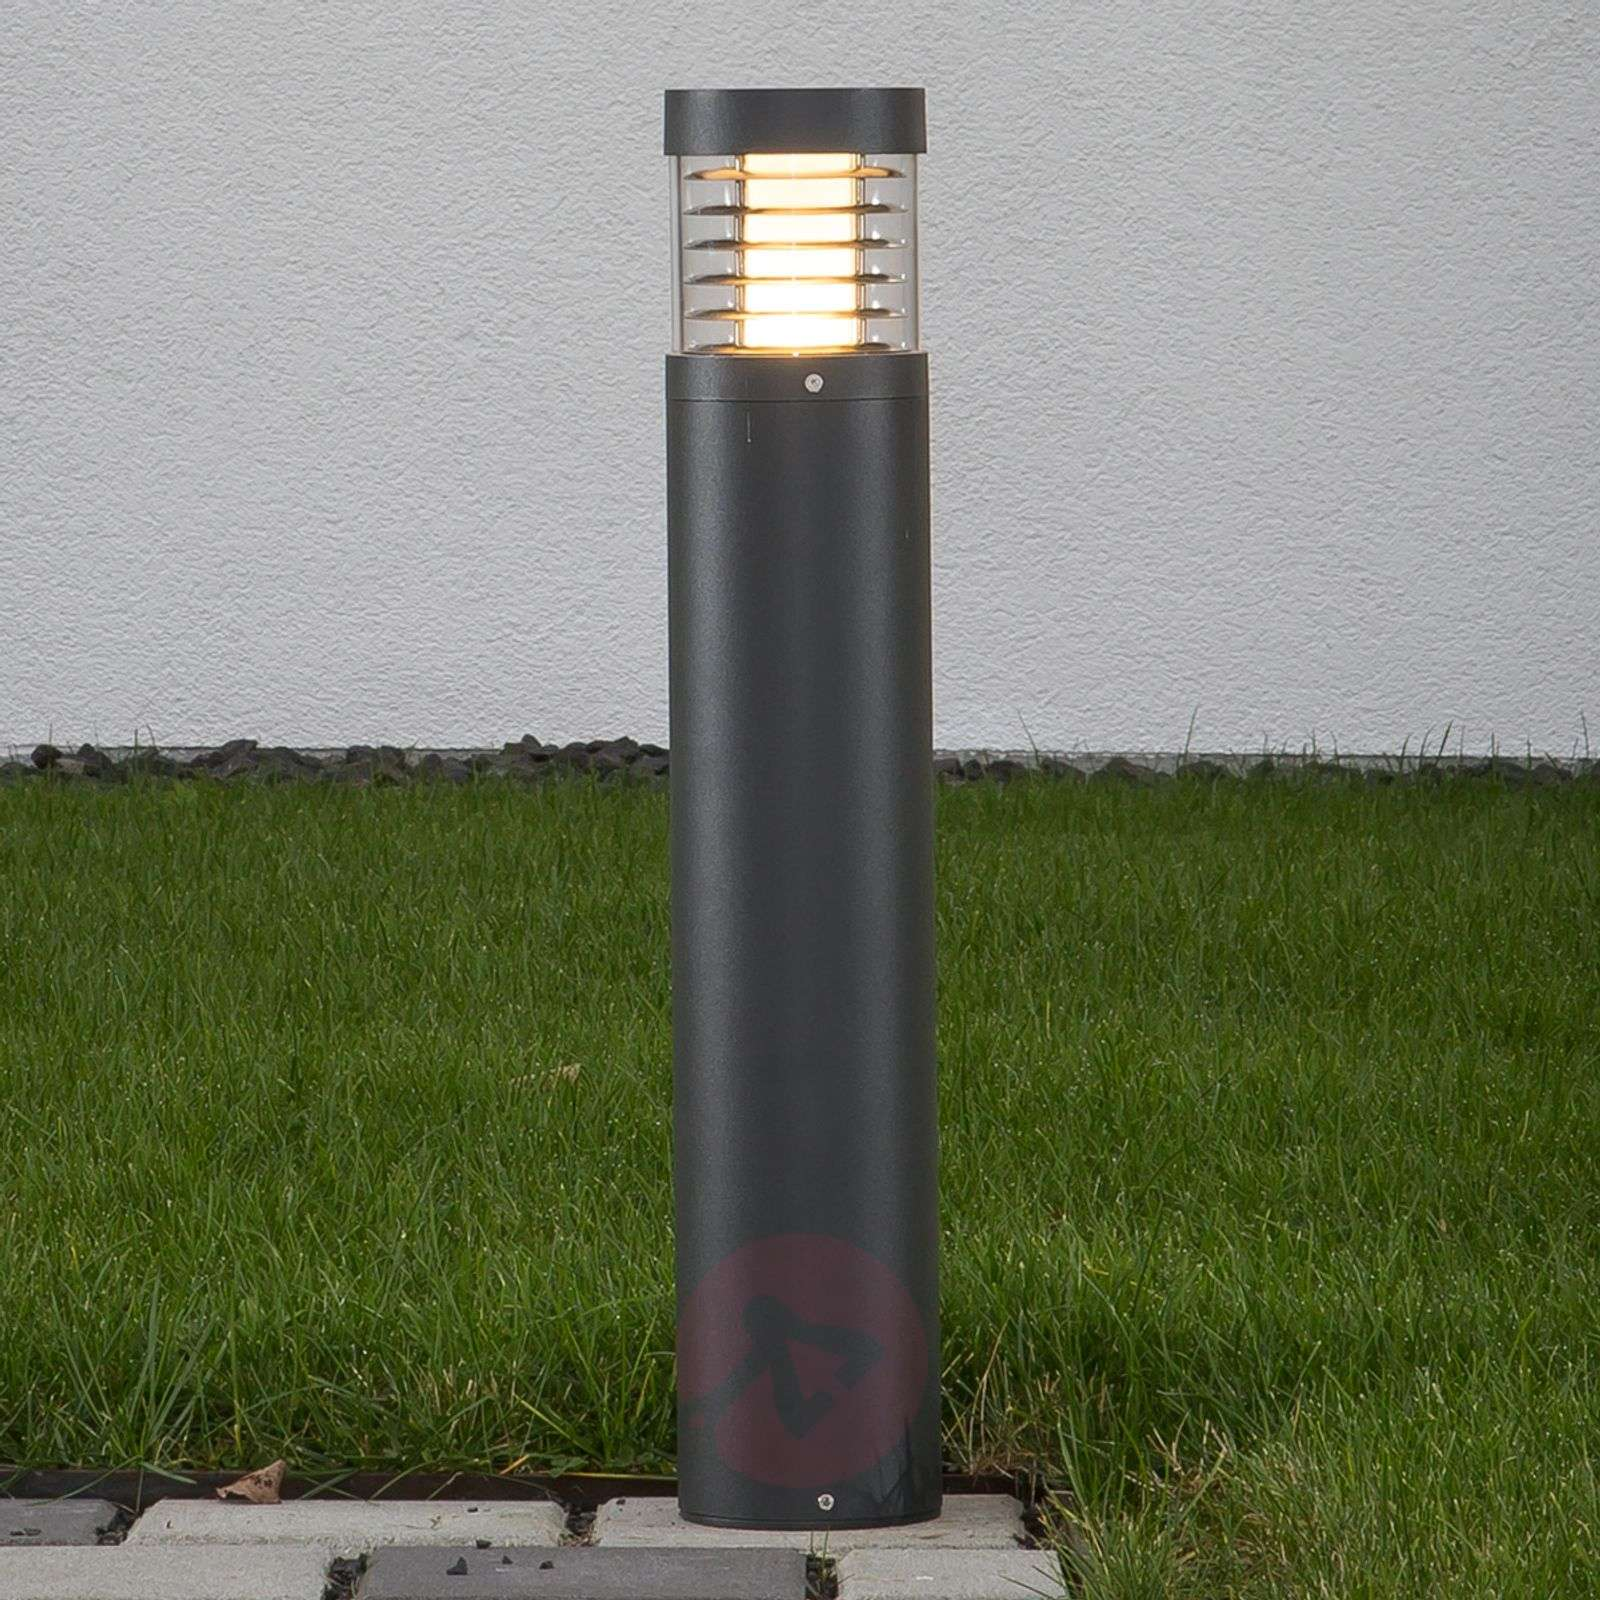 65 cm high LED pathway light Lucius-9616053-01